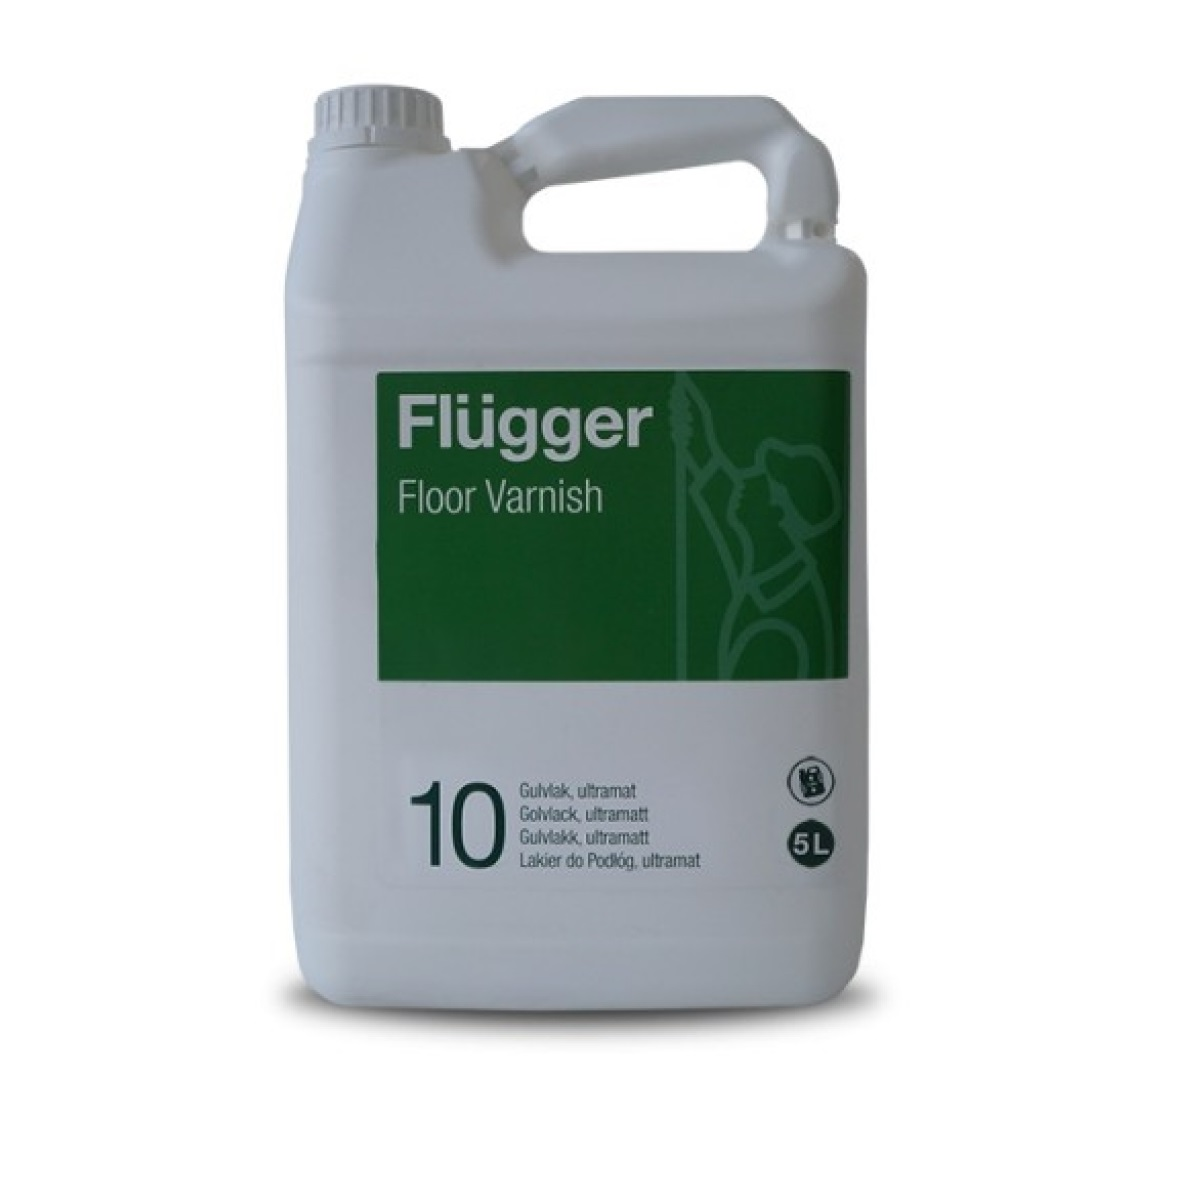 Flügger Floor Varnish (Gulvlak ultramat)